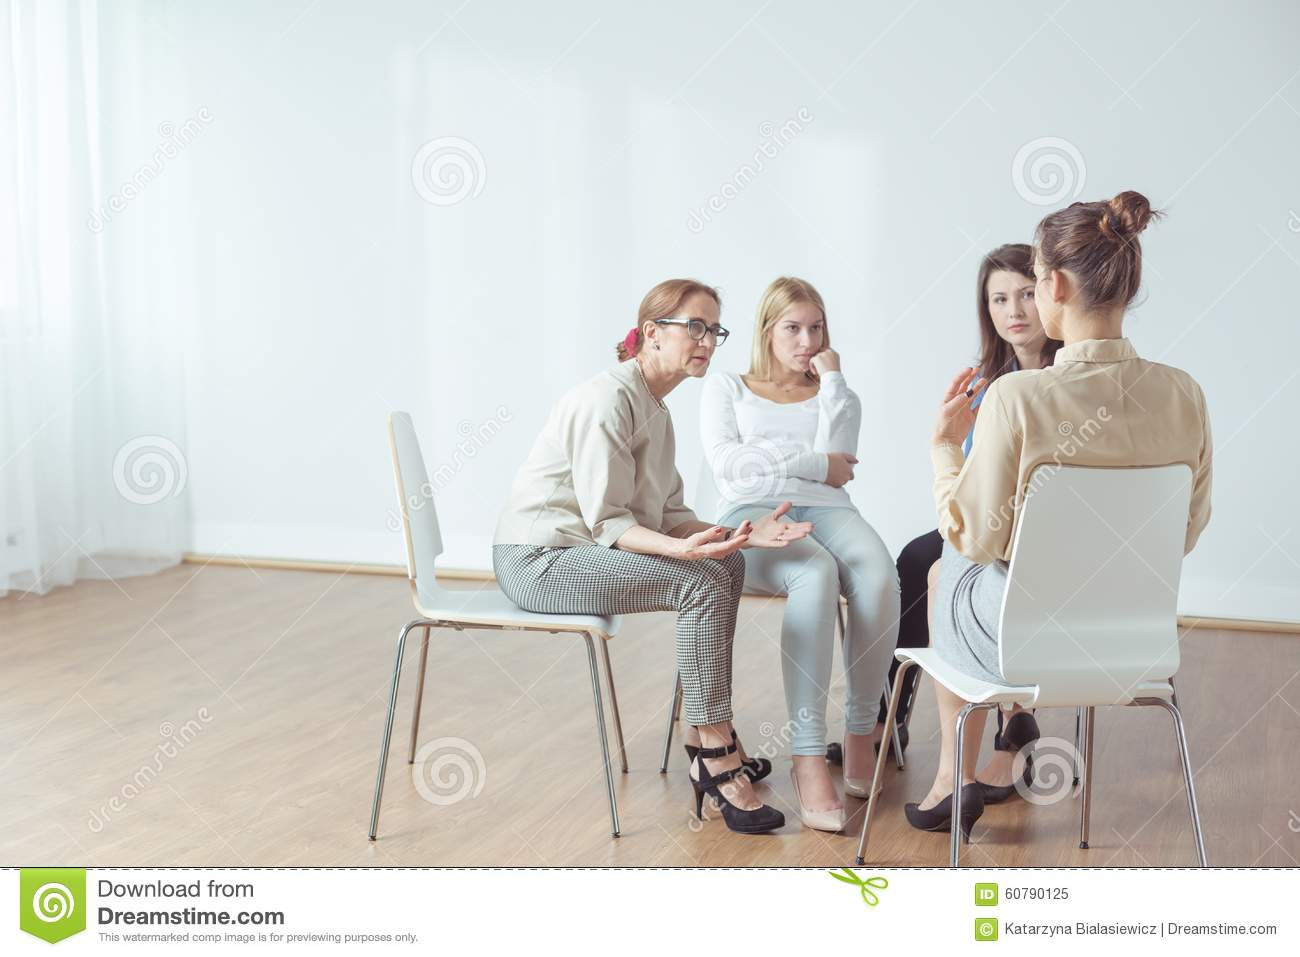 Coach and support group